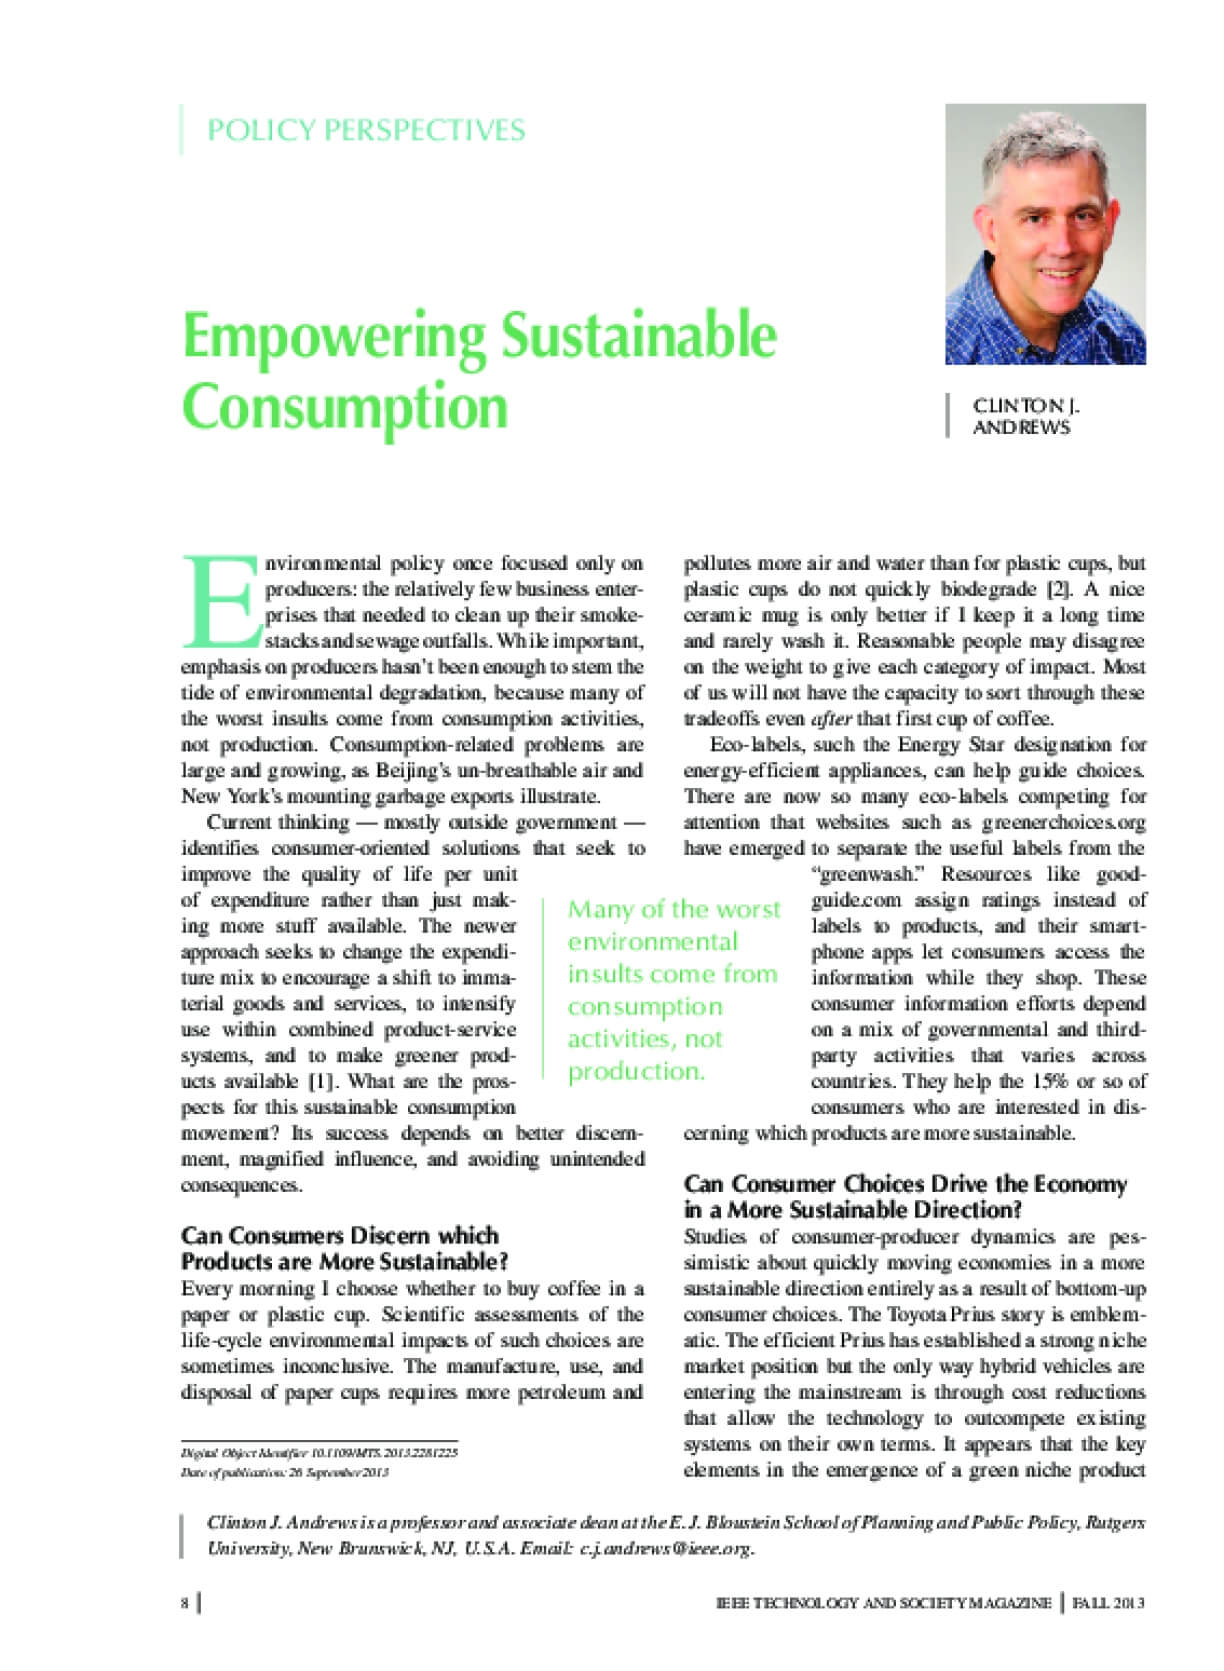 Empowering Sustainable Consumption